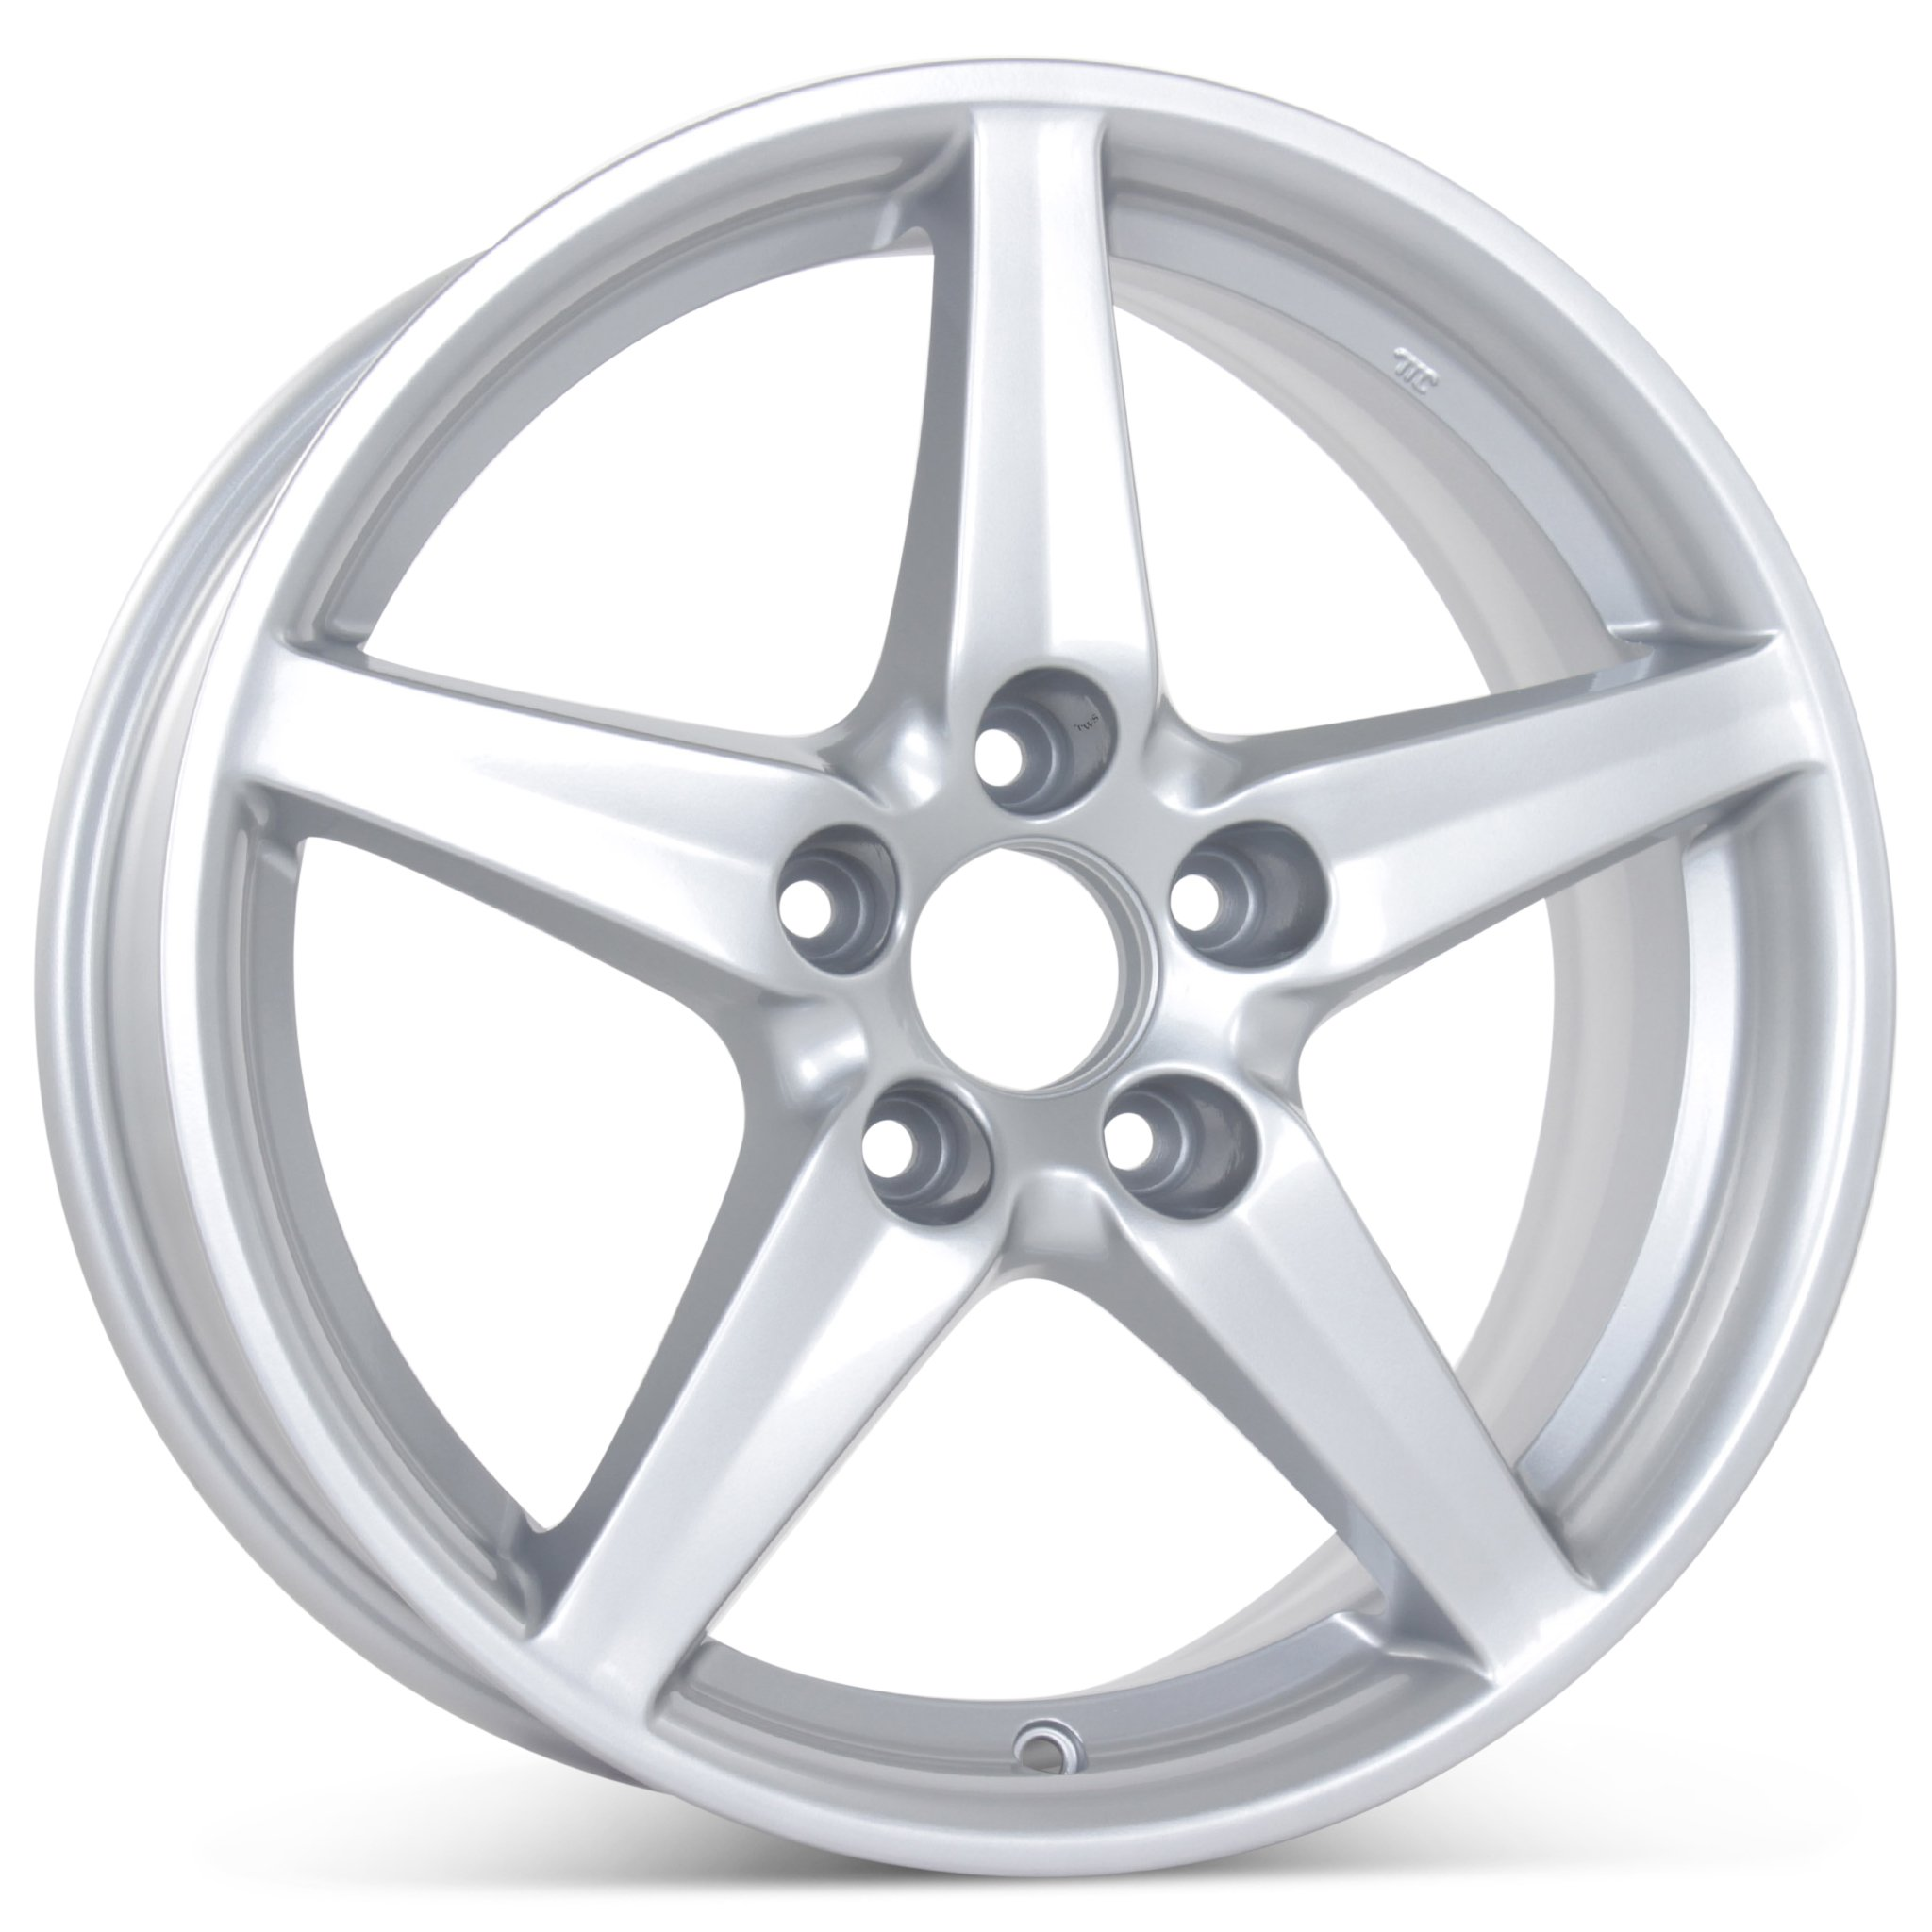 New 17'' Alloy Replacement Wheel for Acura RSX Type S 2005-2006 Rim 71752